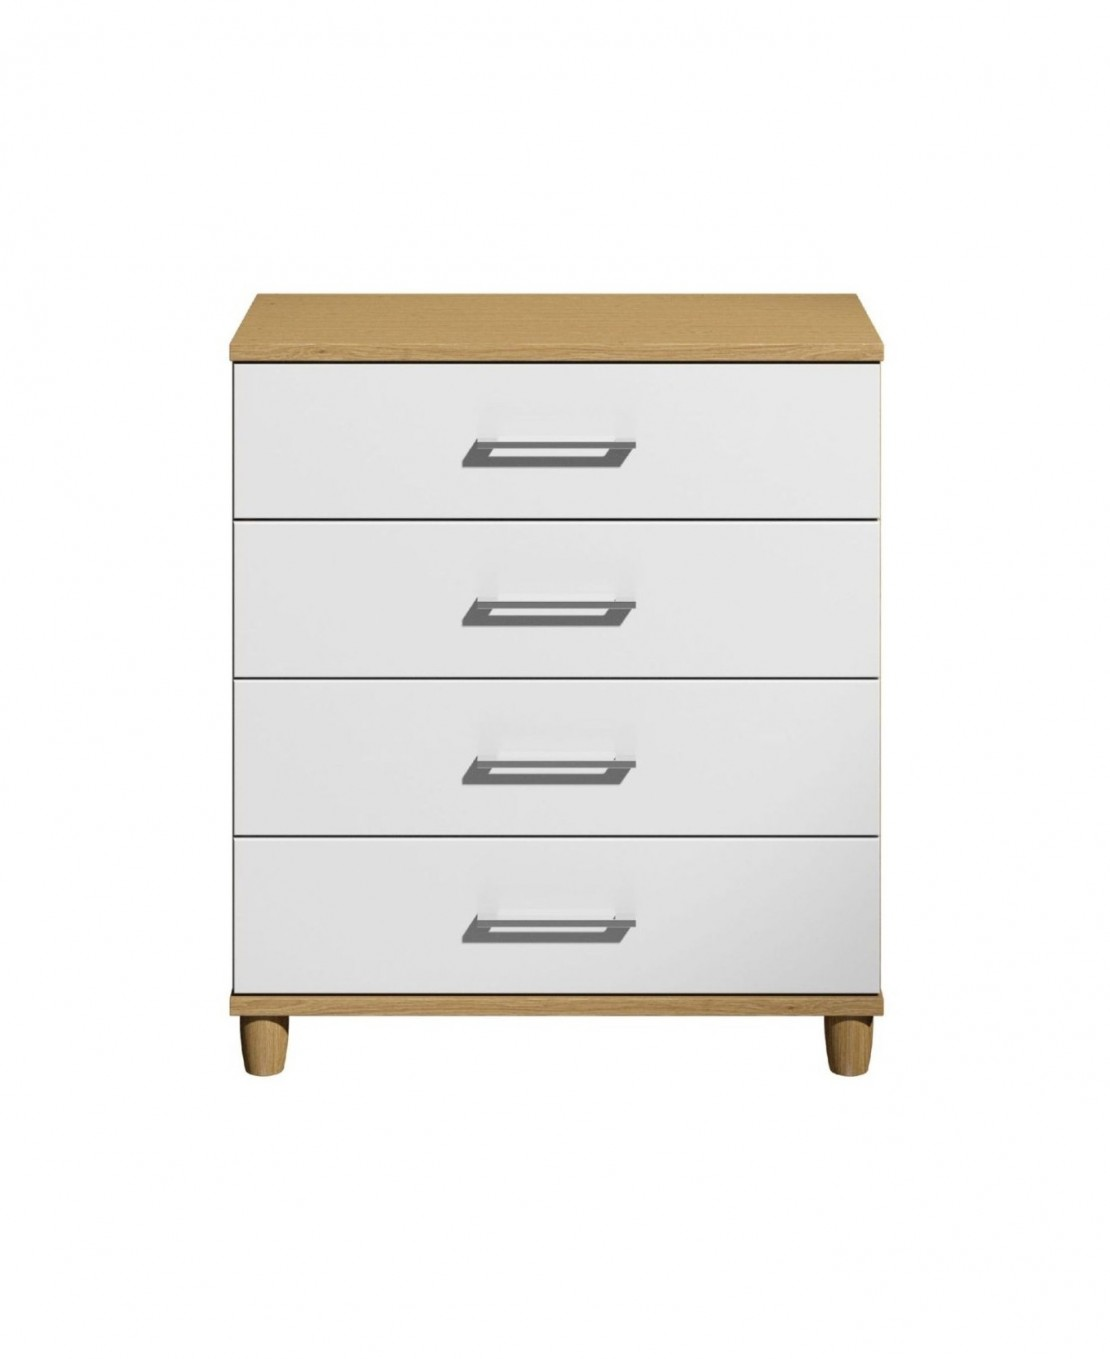 /_images/product-photos/kt-furniture-vardy-4-drawer-chest-white-a.jpg